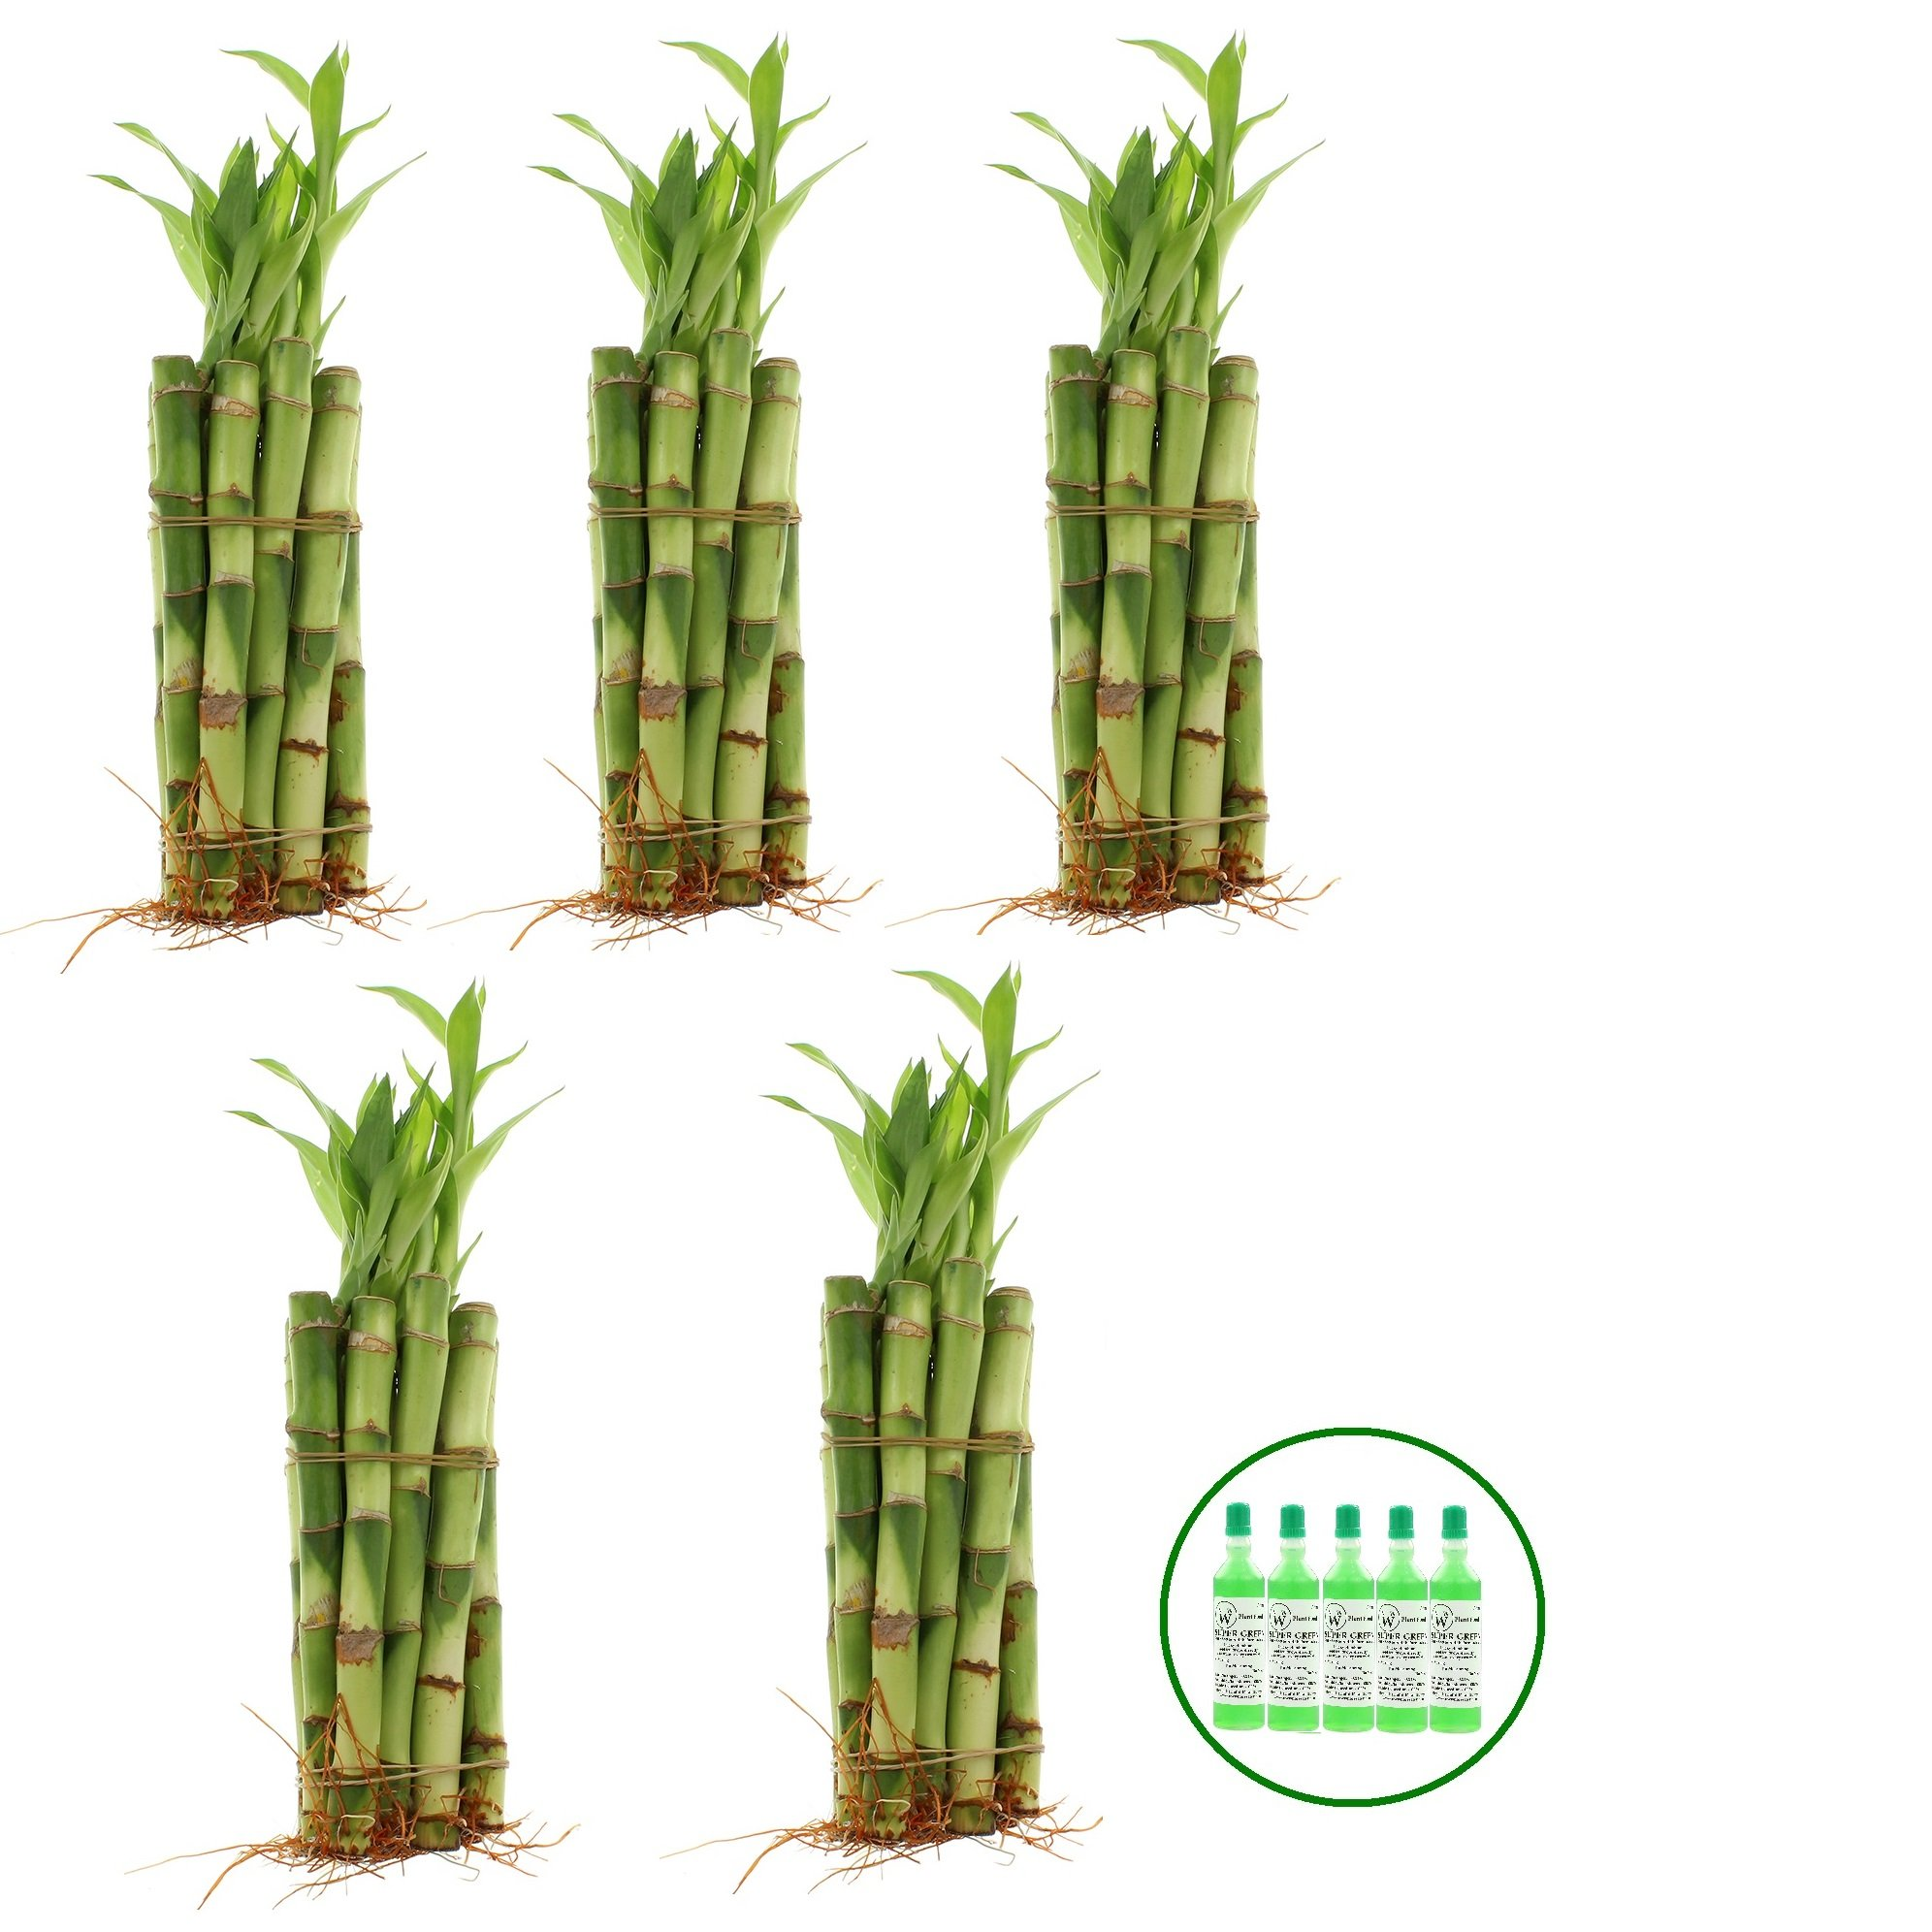 NW Wholesaler - Live Lucky Bamboo 6'' Straight Stalks w/ 5 Free Bottle of Super Green Lucky Bamboo Fertilizer (50) by NW Wholesaler (Image #1)